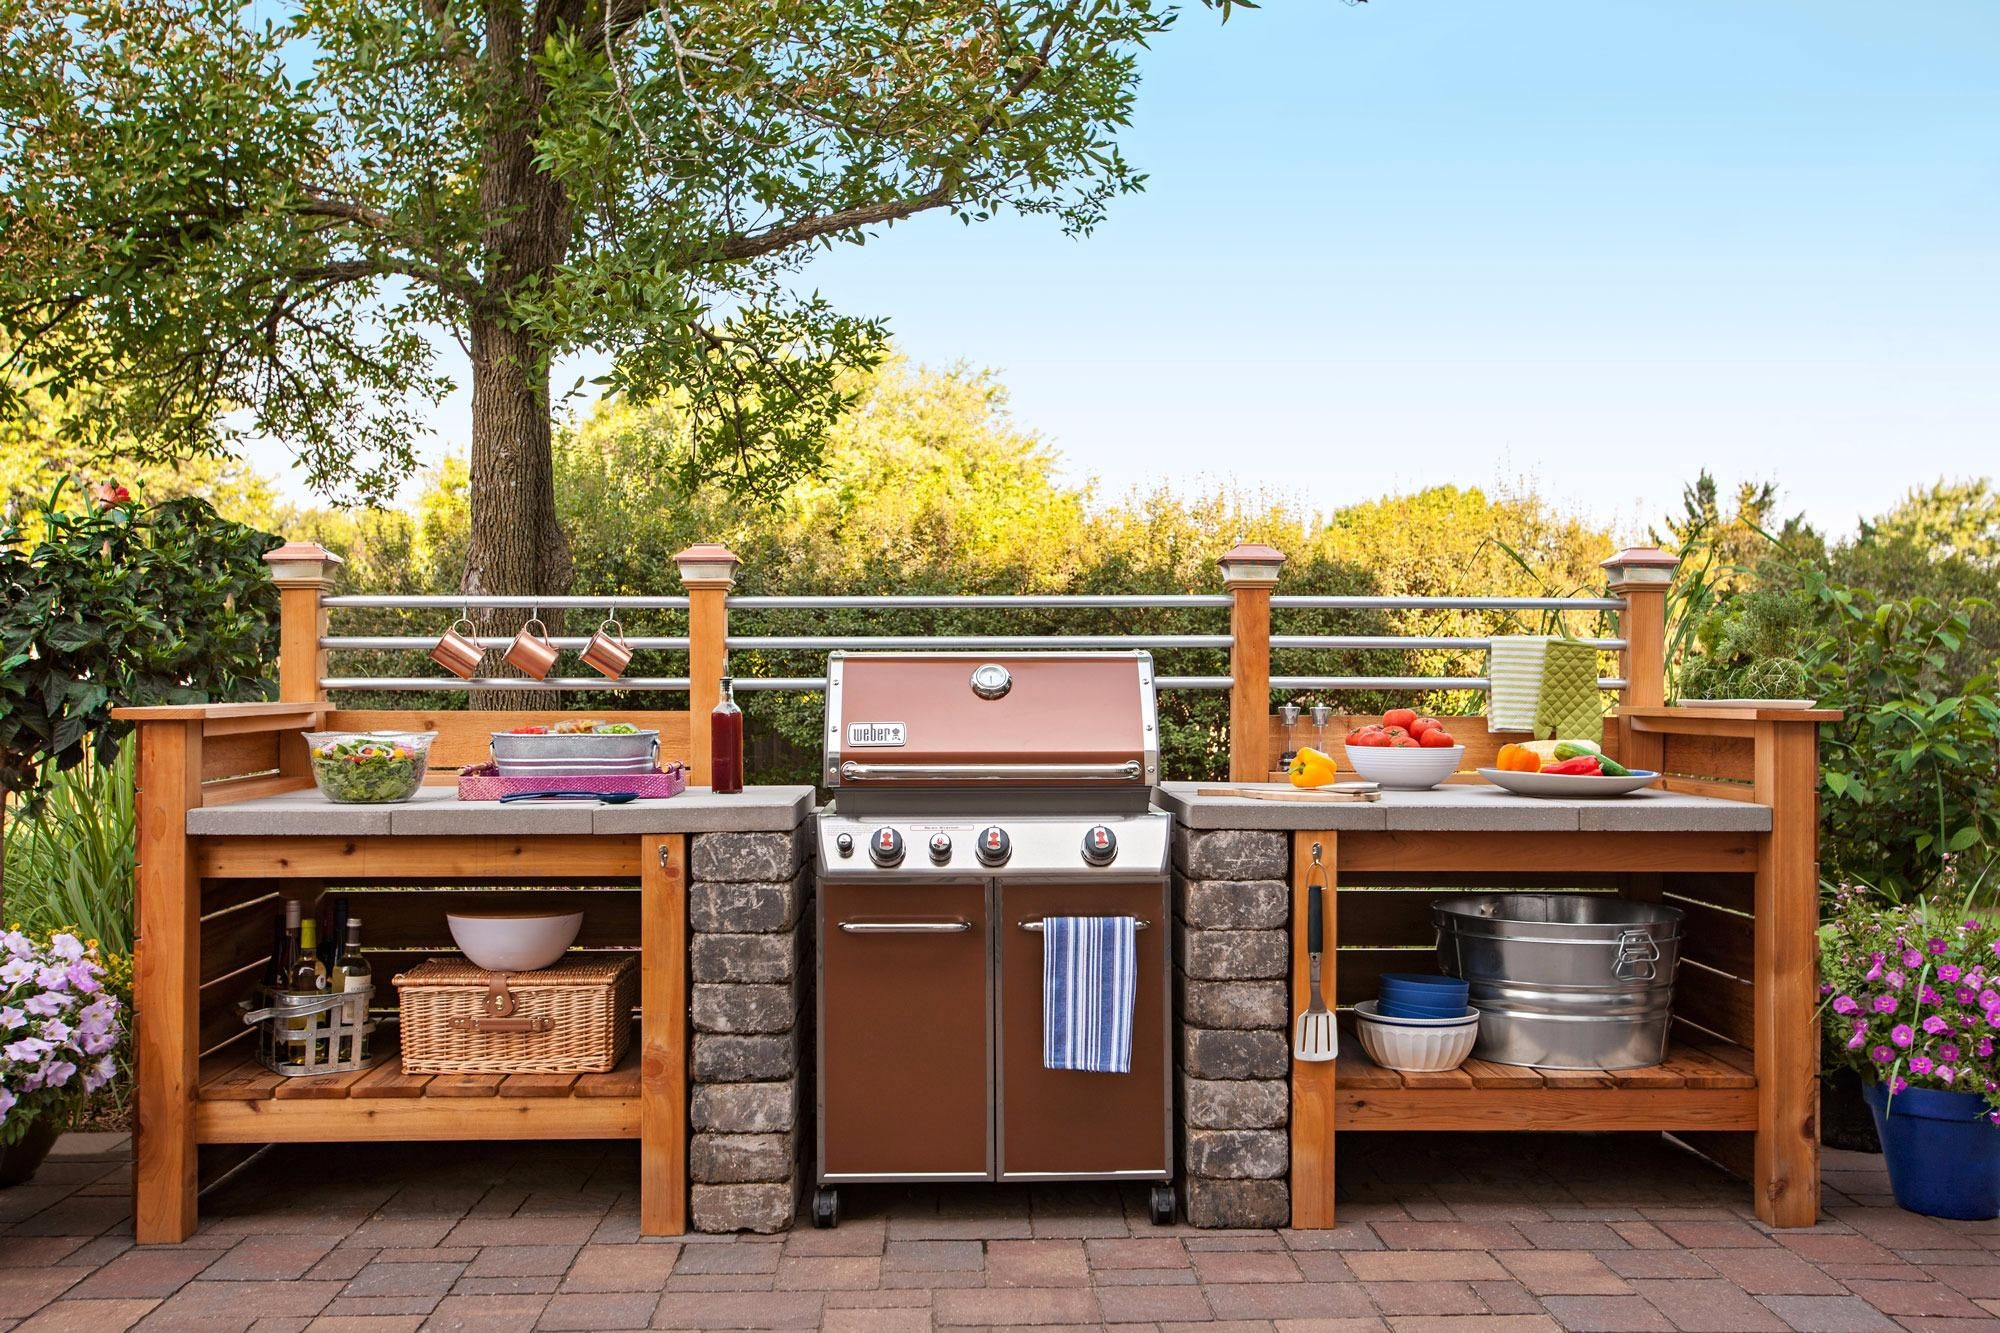 Lowes Hours 64154 Yahoo Search Results Diy Outdoor Kitchen Outdoor Kitchen Decor Outdoor Kitchen